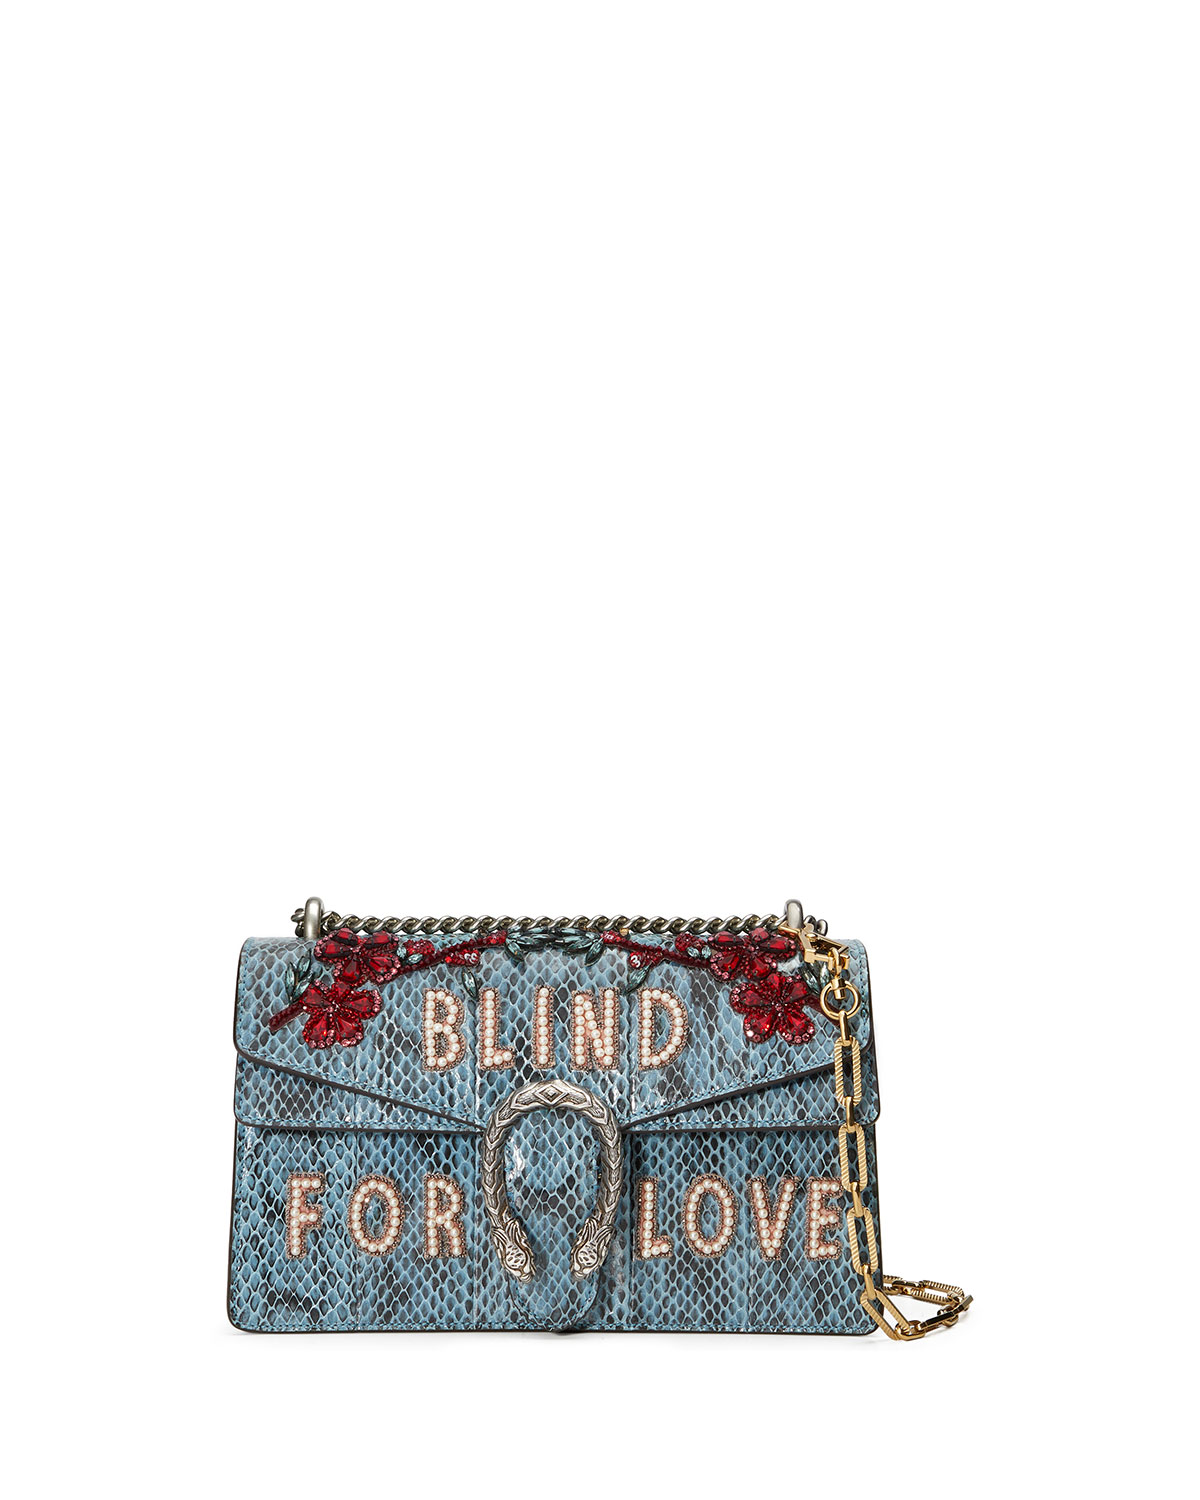 1143737f44d8dd Gucci Dionysus Small Blind For Love Shoulder Bag, Marine Blue ...